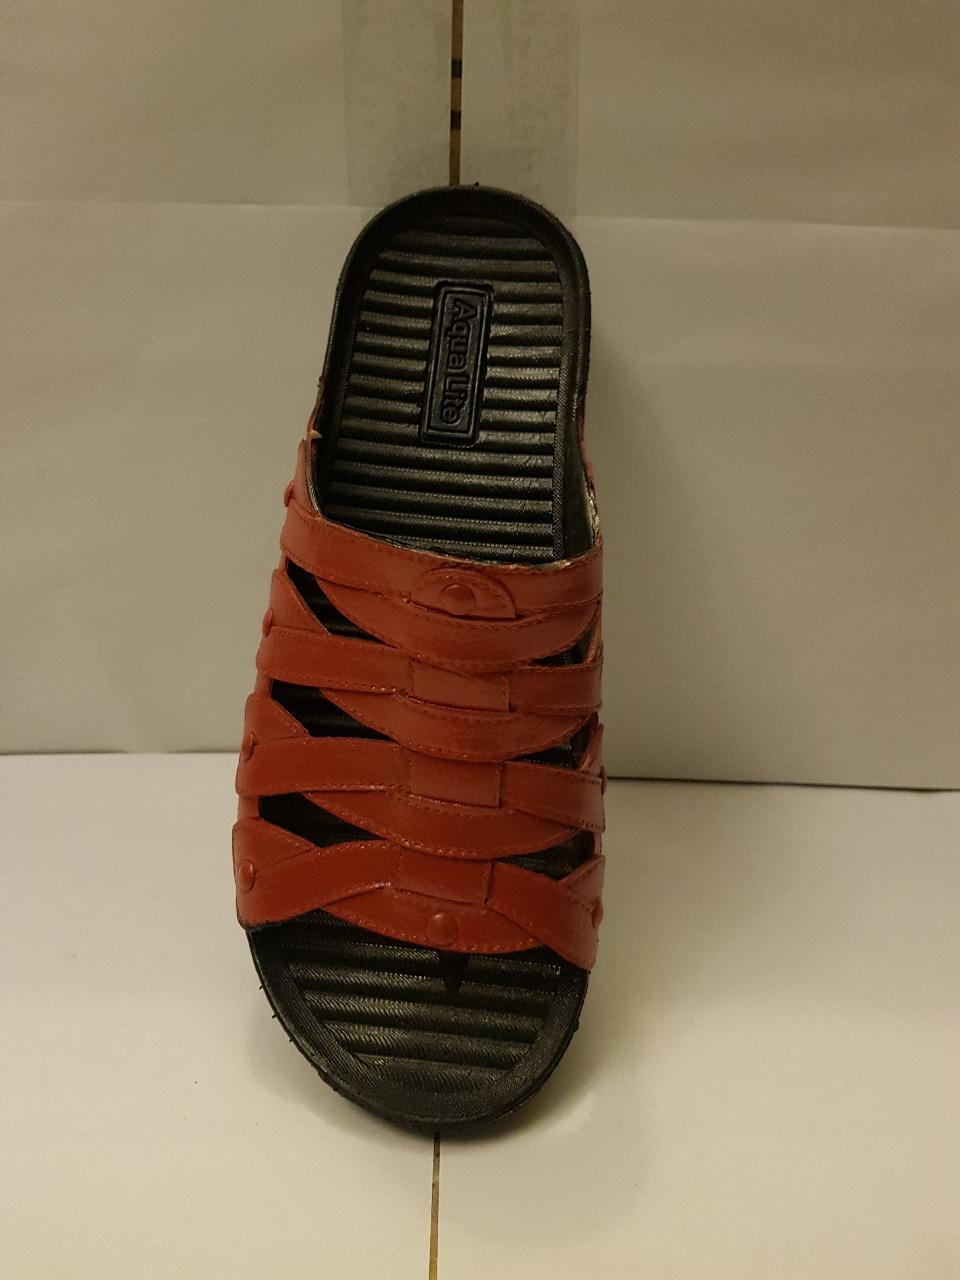 Rubber Sandals/Slippers Shoes - Waterproof - Soft And Comfortable - Light Brown Color -A013